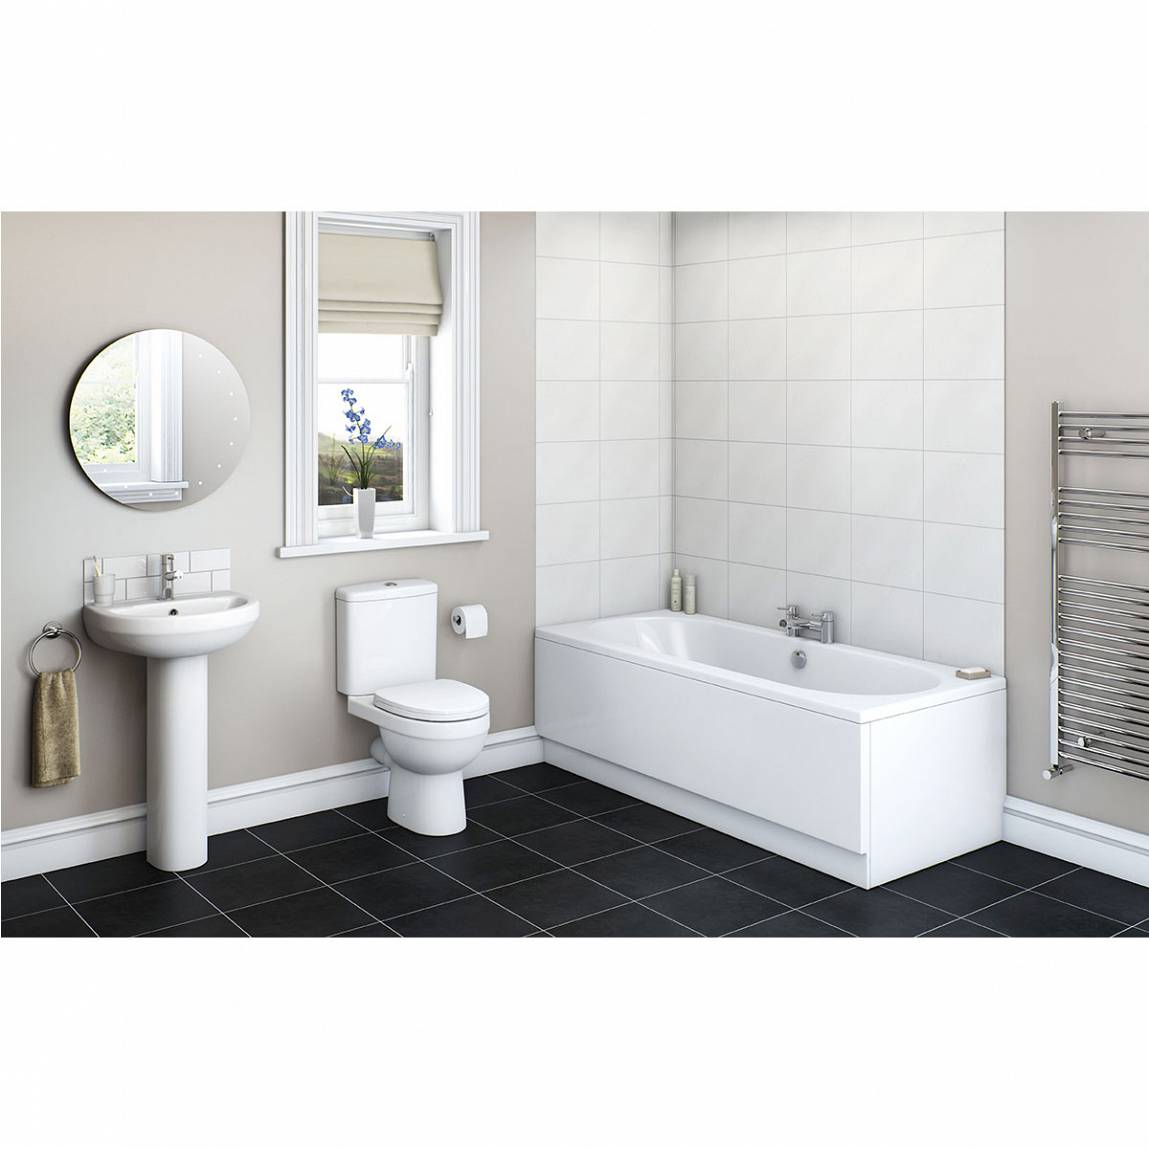 Image of Energy Bathroom Set with Islington 1700 x 700 Bath Suite